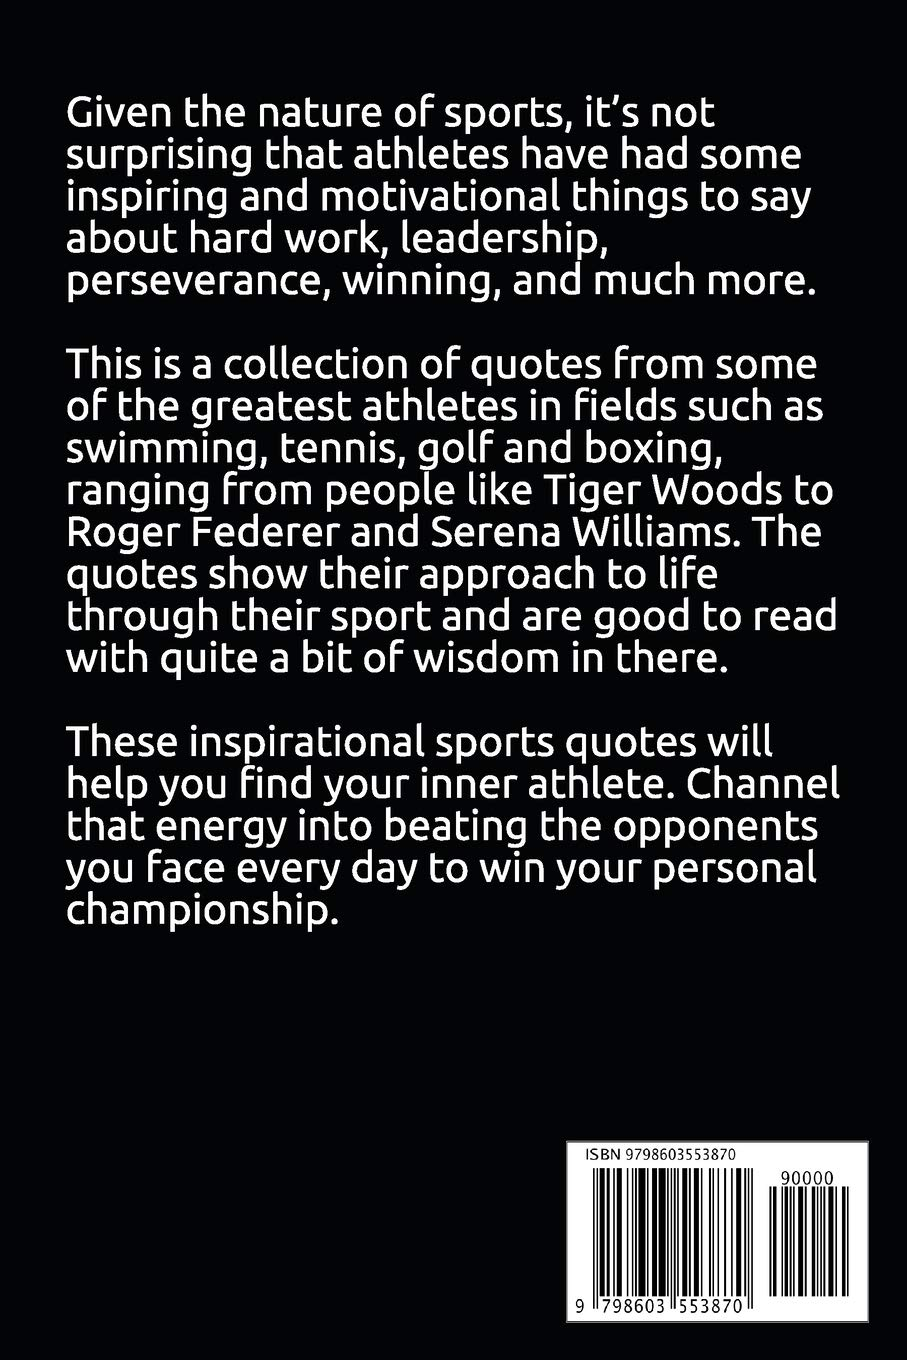 Best Sports Quotes Book Quotes From The Greatest Athletes And Sports Men Of All Time Sports And Athletic Quotes Winfrey Michelle 9798603553870 Amazon Com Books